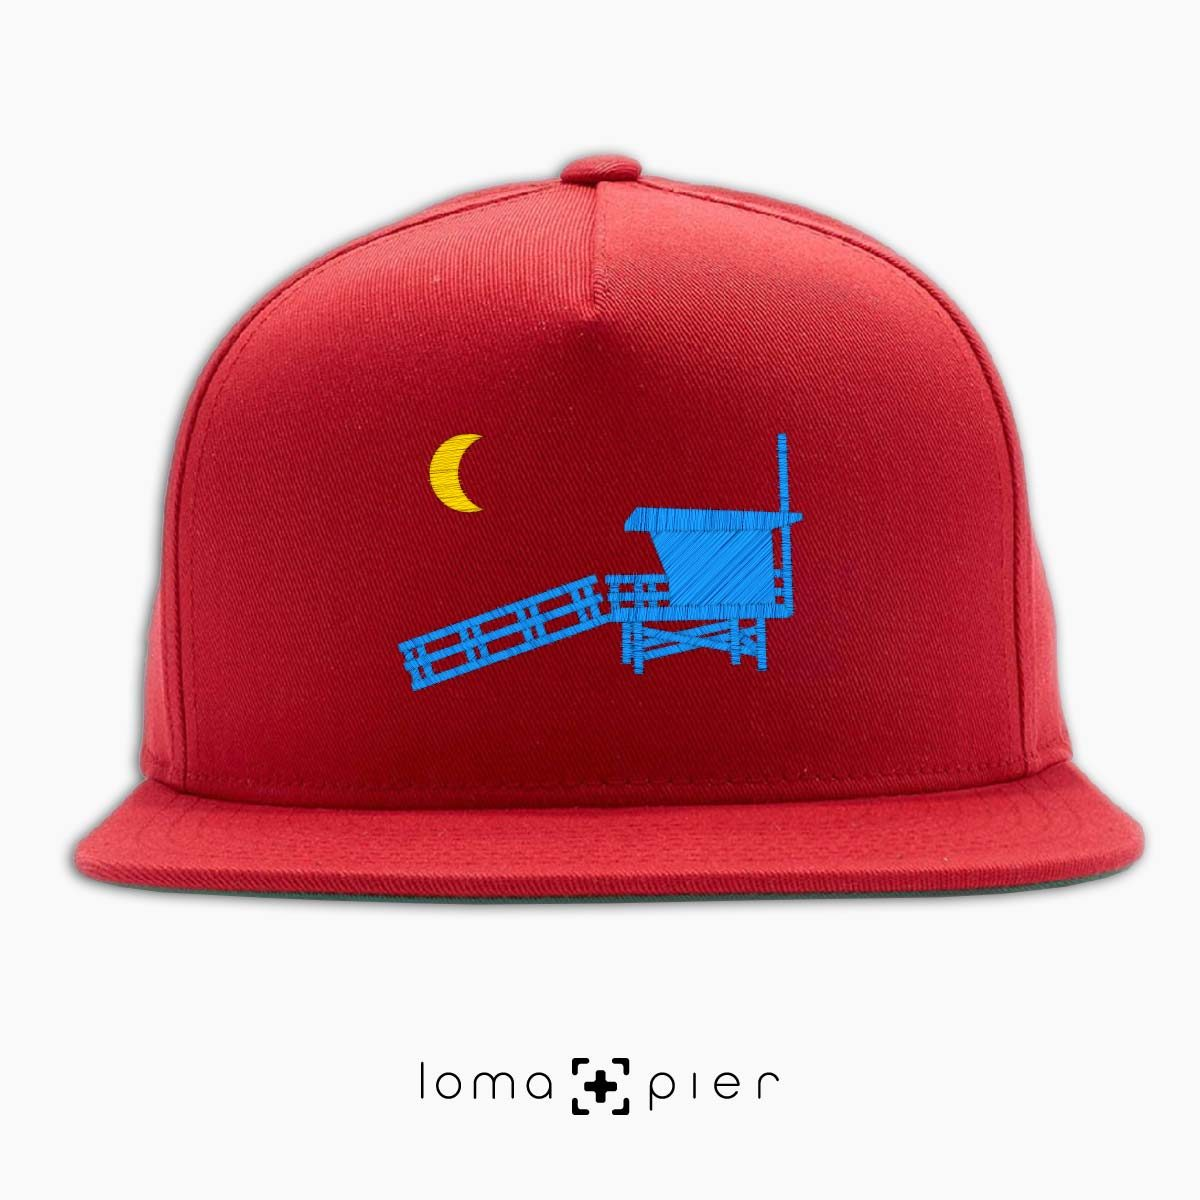 hermosa beach LIFEGUARD TOWER icon embroidered on a red classic snapback hat by loma+pier hat store